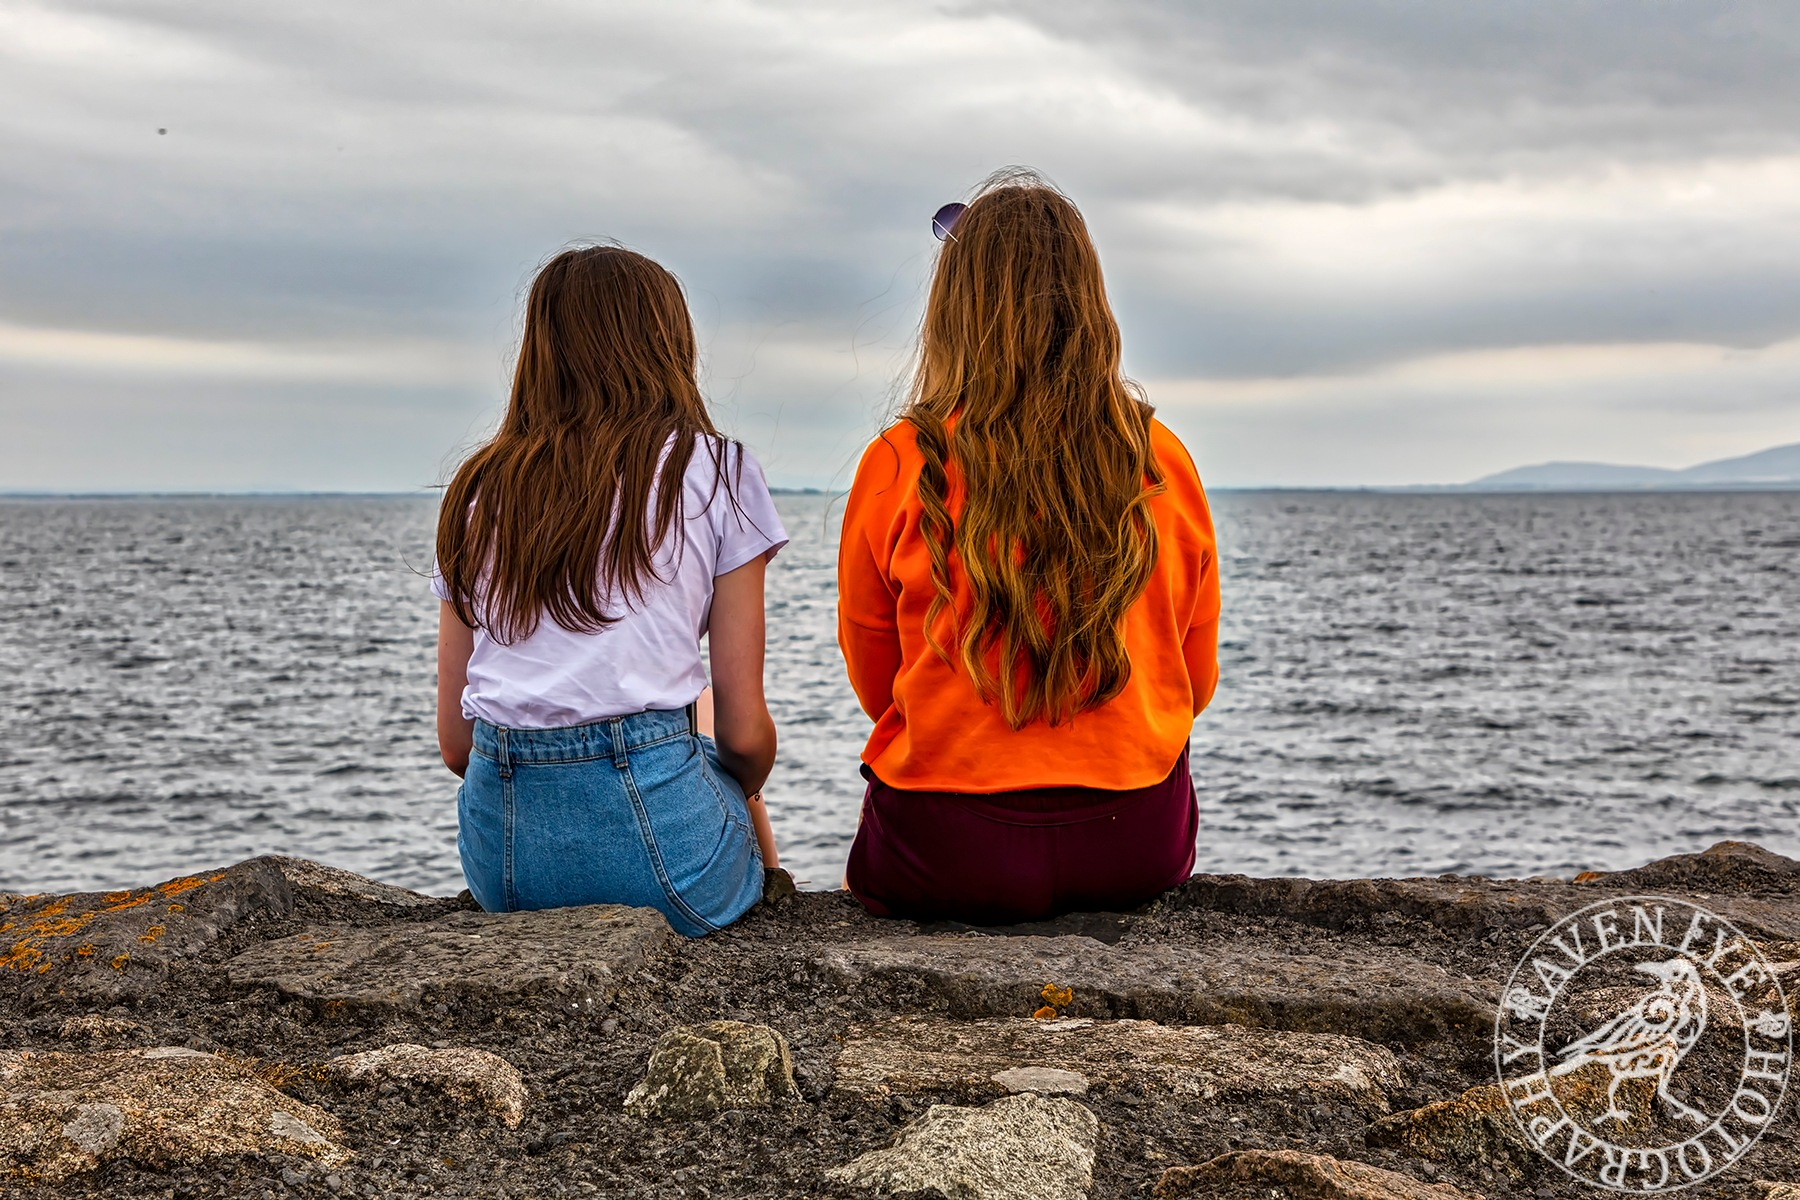 Looking Out to Sea by Declan Byrne